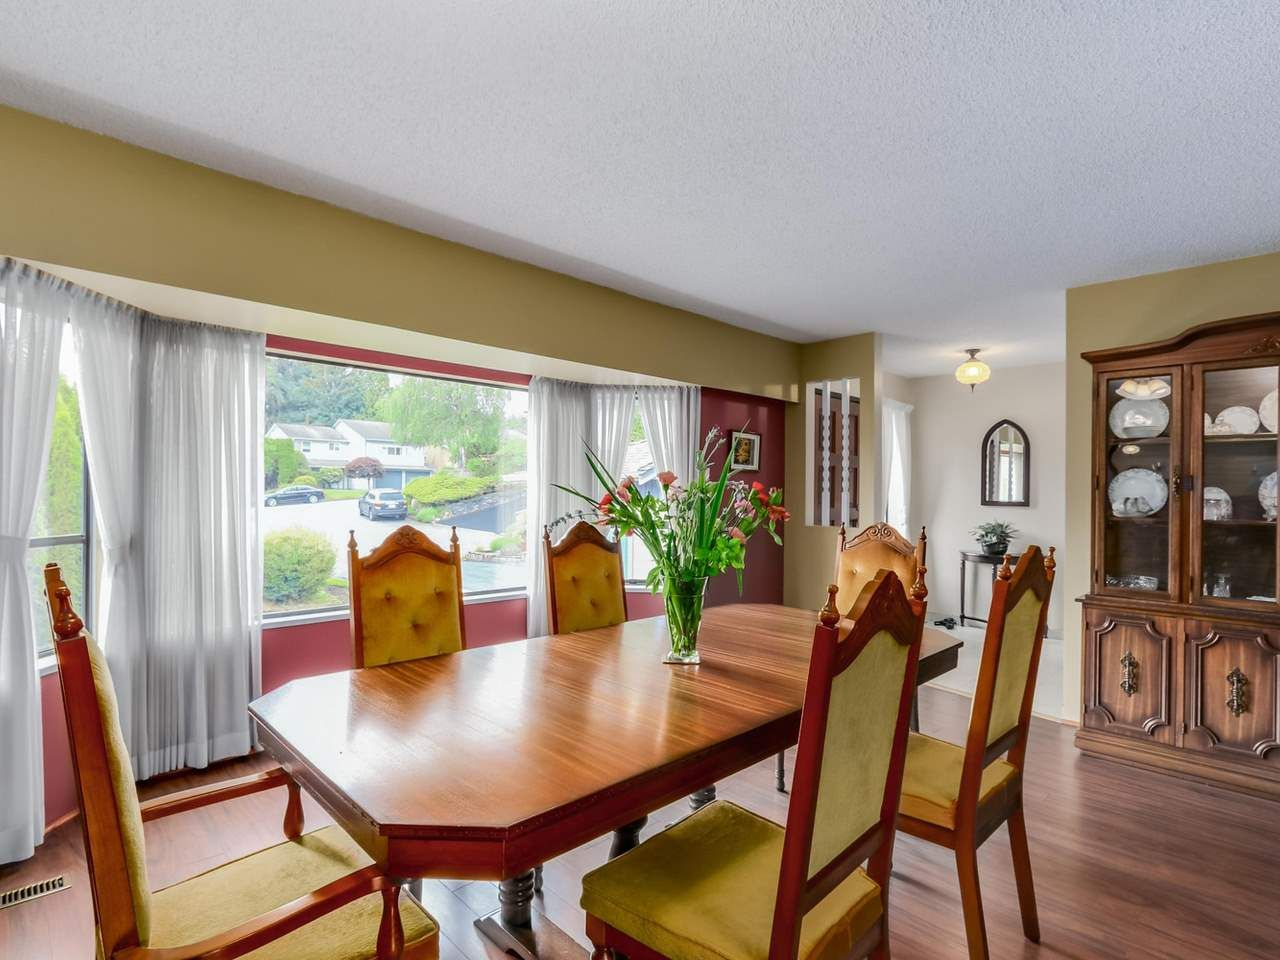 Photo 7: Photos: 4032 AYLING Street in Port Coquitlam: Oxford Heights House for sale : MLS®# R2074528